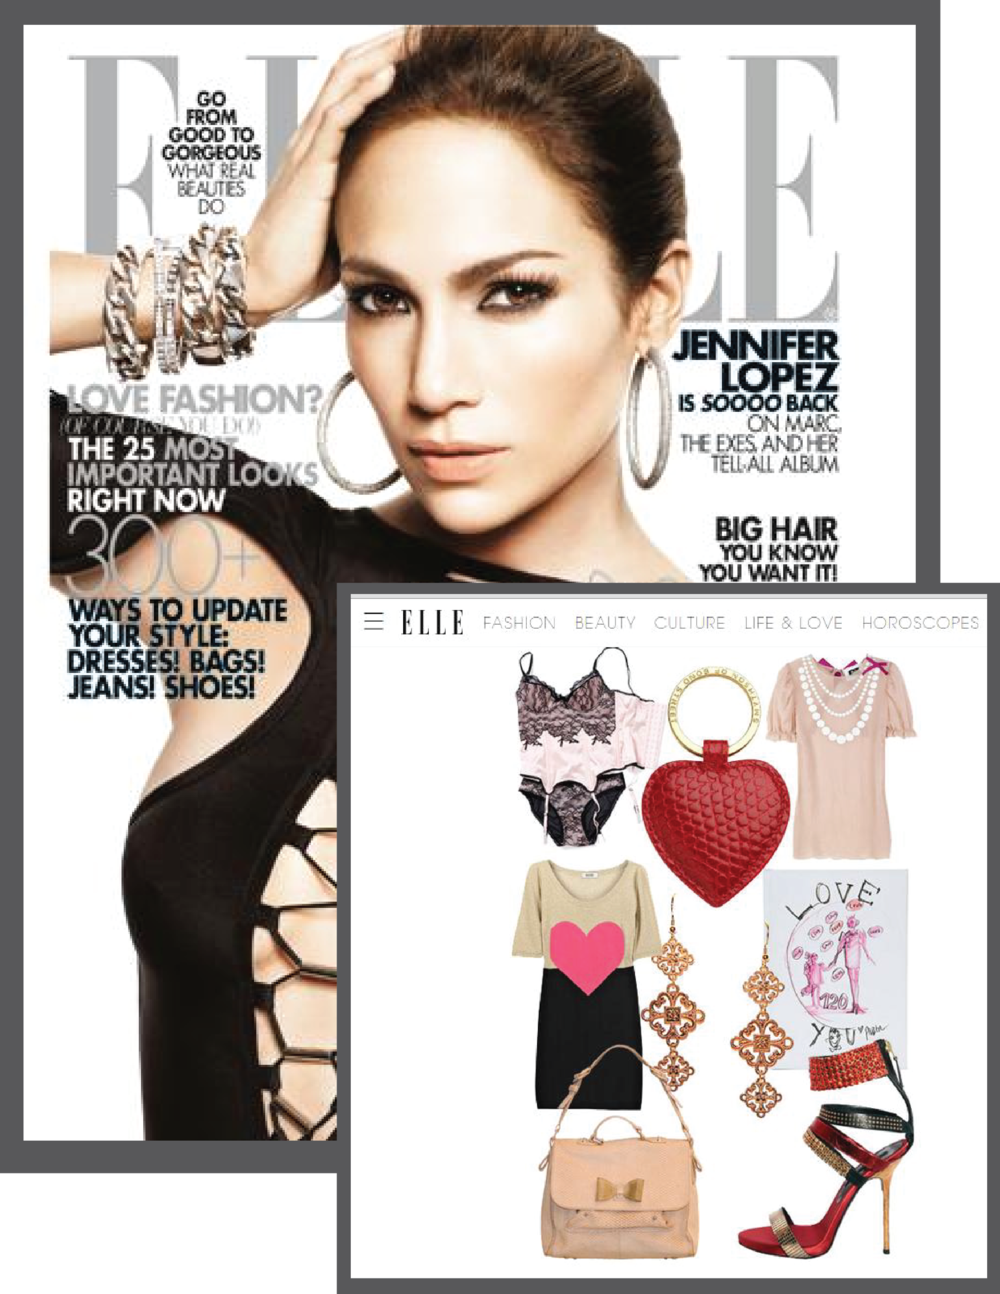 One meaning Lace 813 Earrings in ELLE Magazine